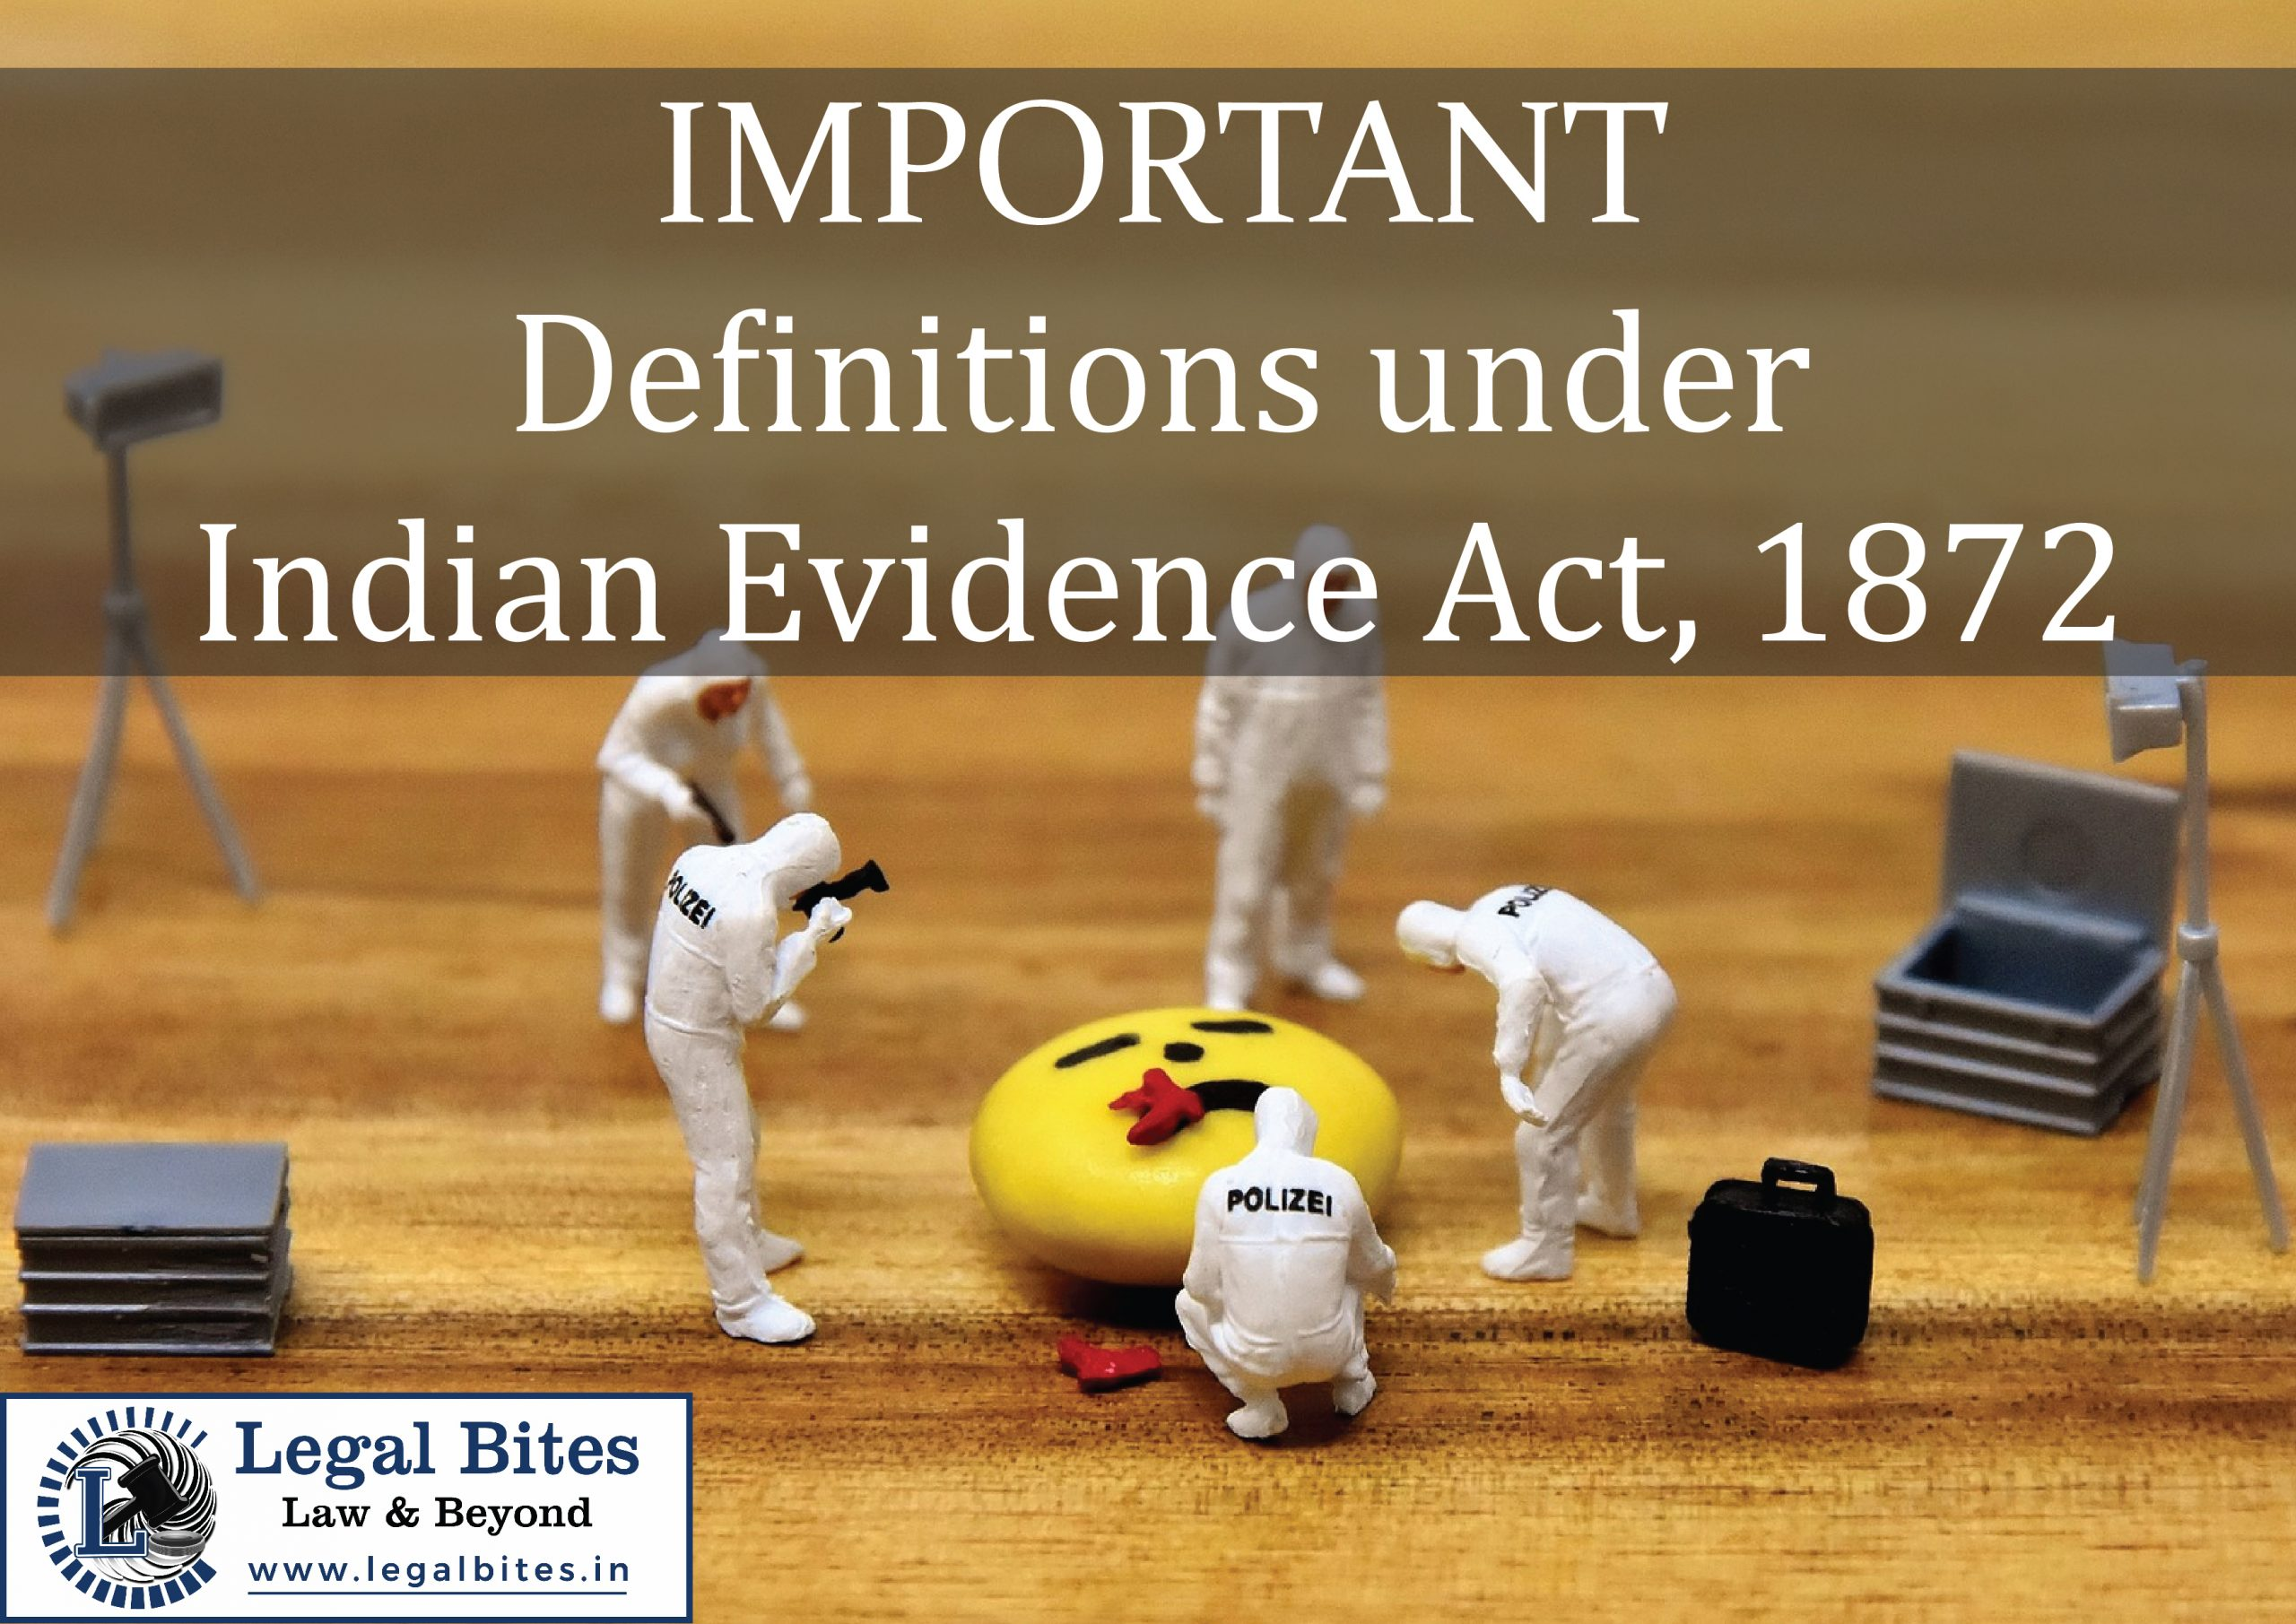 Important Definitions under Indian Evidence Act, 1872